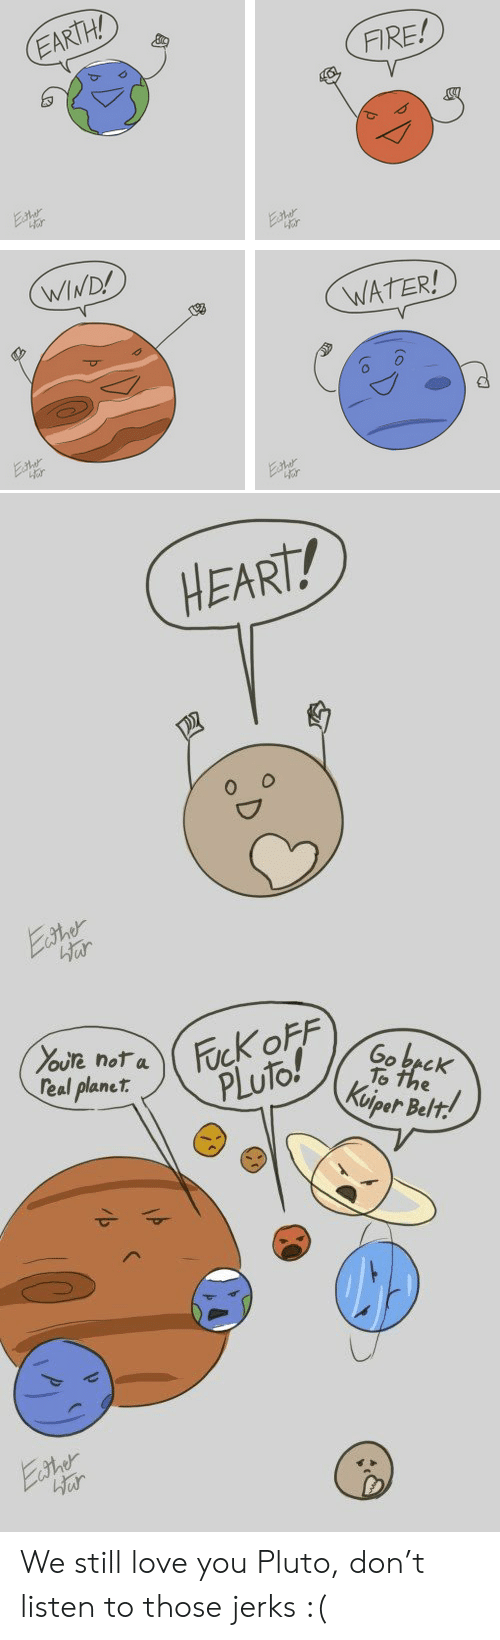 Fire, Love, and Beck: EARTH!  FIRE!  WIND!  WATER!  or   HEART!   are noTa  eal planet.  Go becK  To  PLuto!  oiper Belt We still love you Pluto, don't listen to those jerks :(